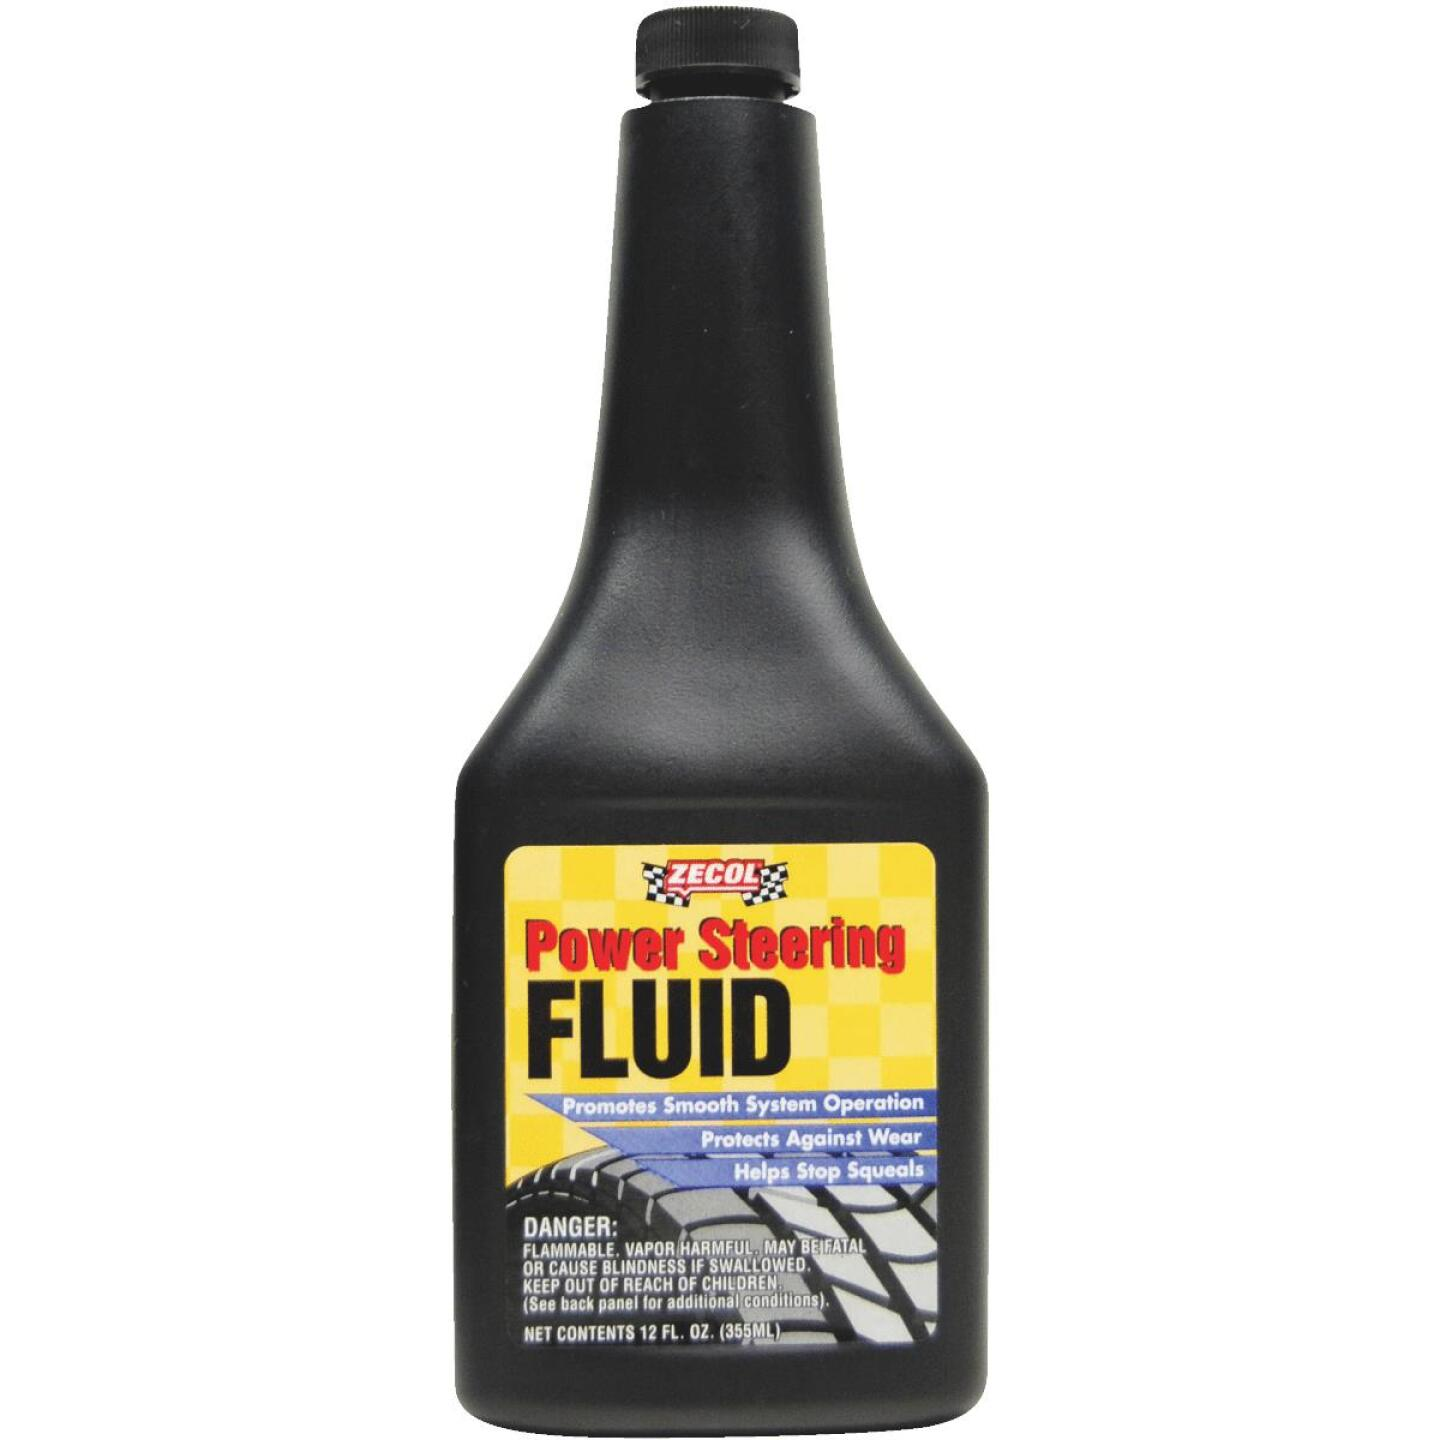 Zecol 12 Oz. Power Steering Fluid Image 1